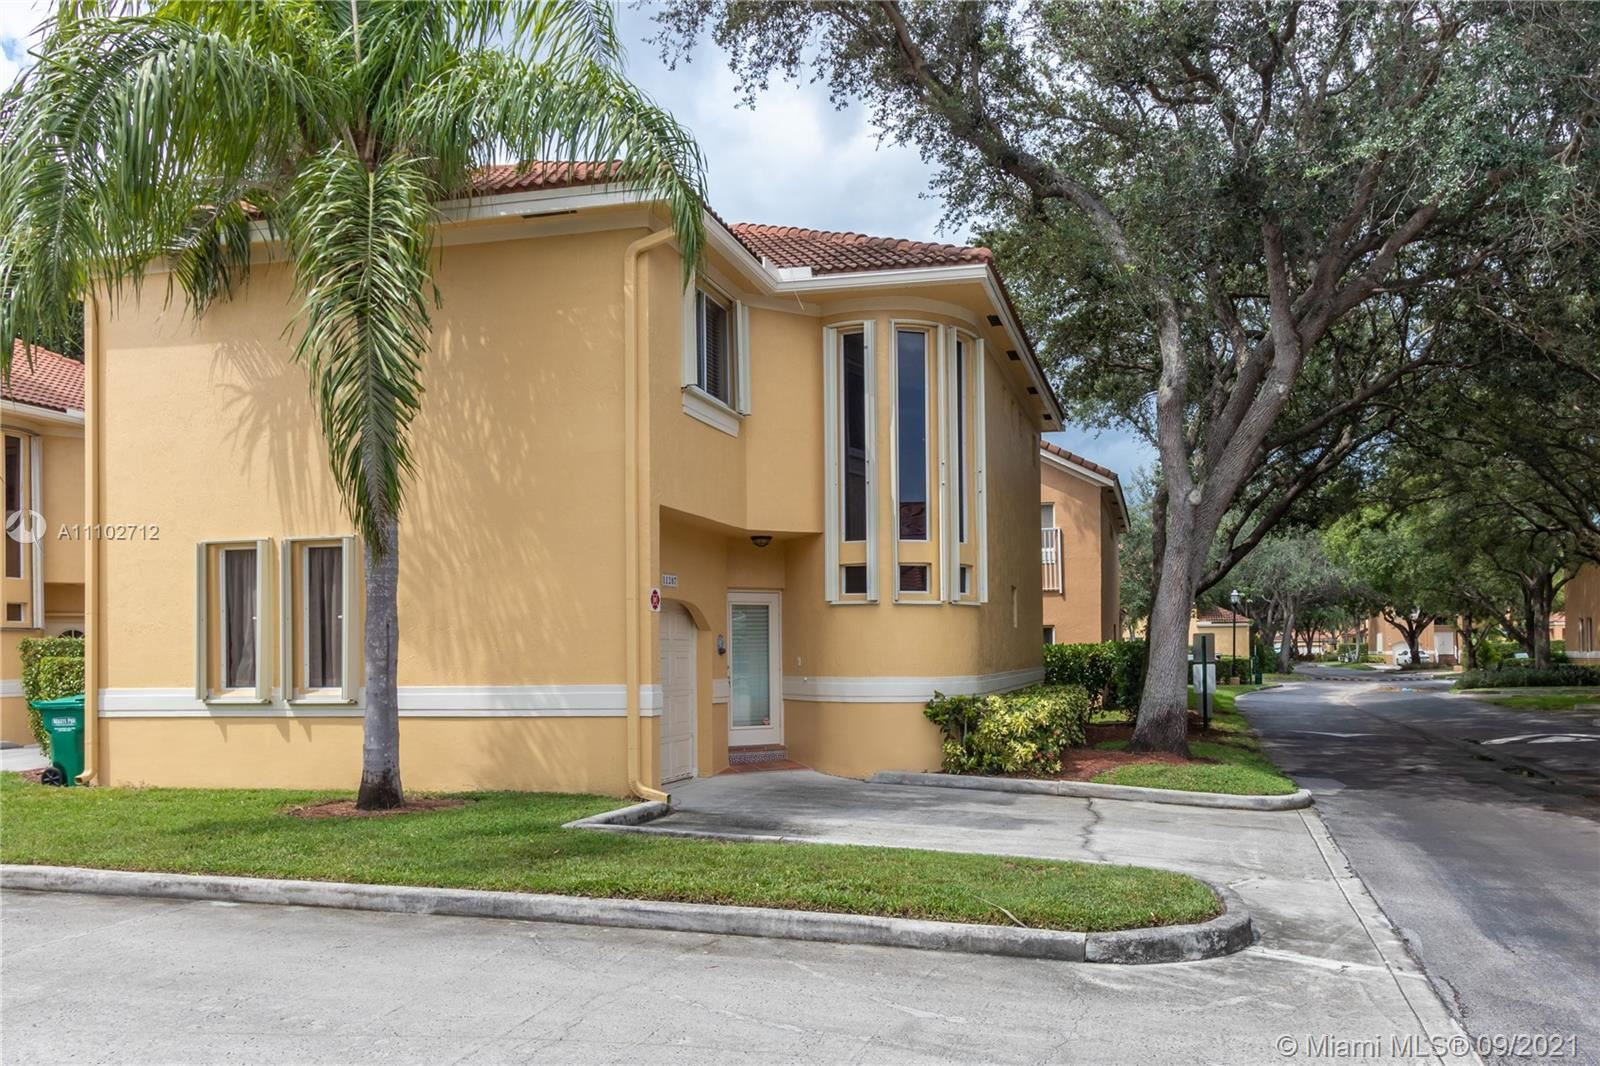 11207 Lakeview Dr, Coral Springs, FL 33071 - #: A11102712